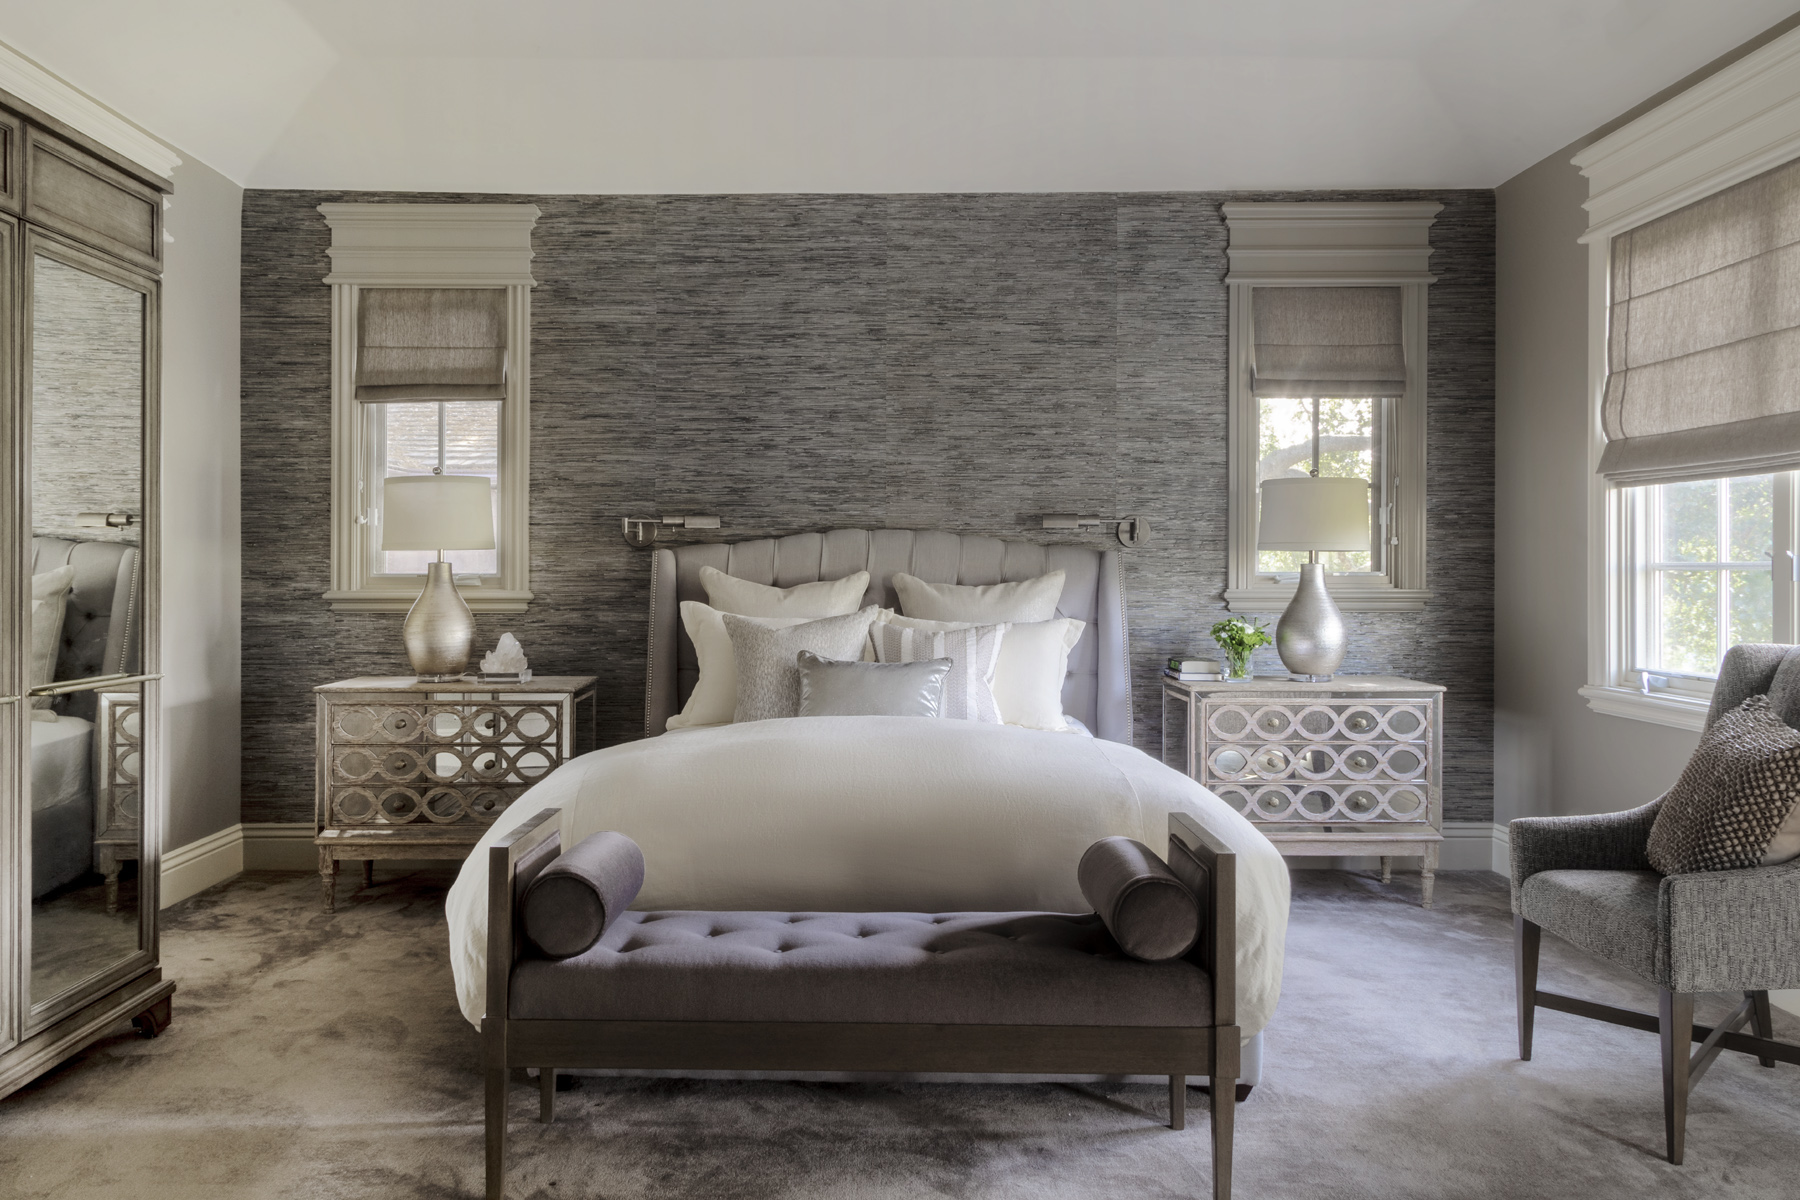 design415_far_east_meets_west_coast_bedroom_6.jpg